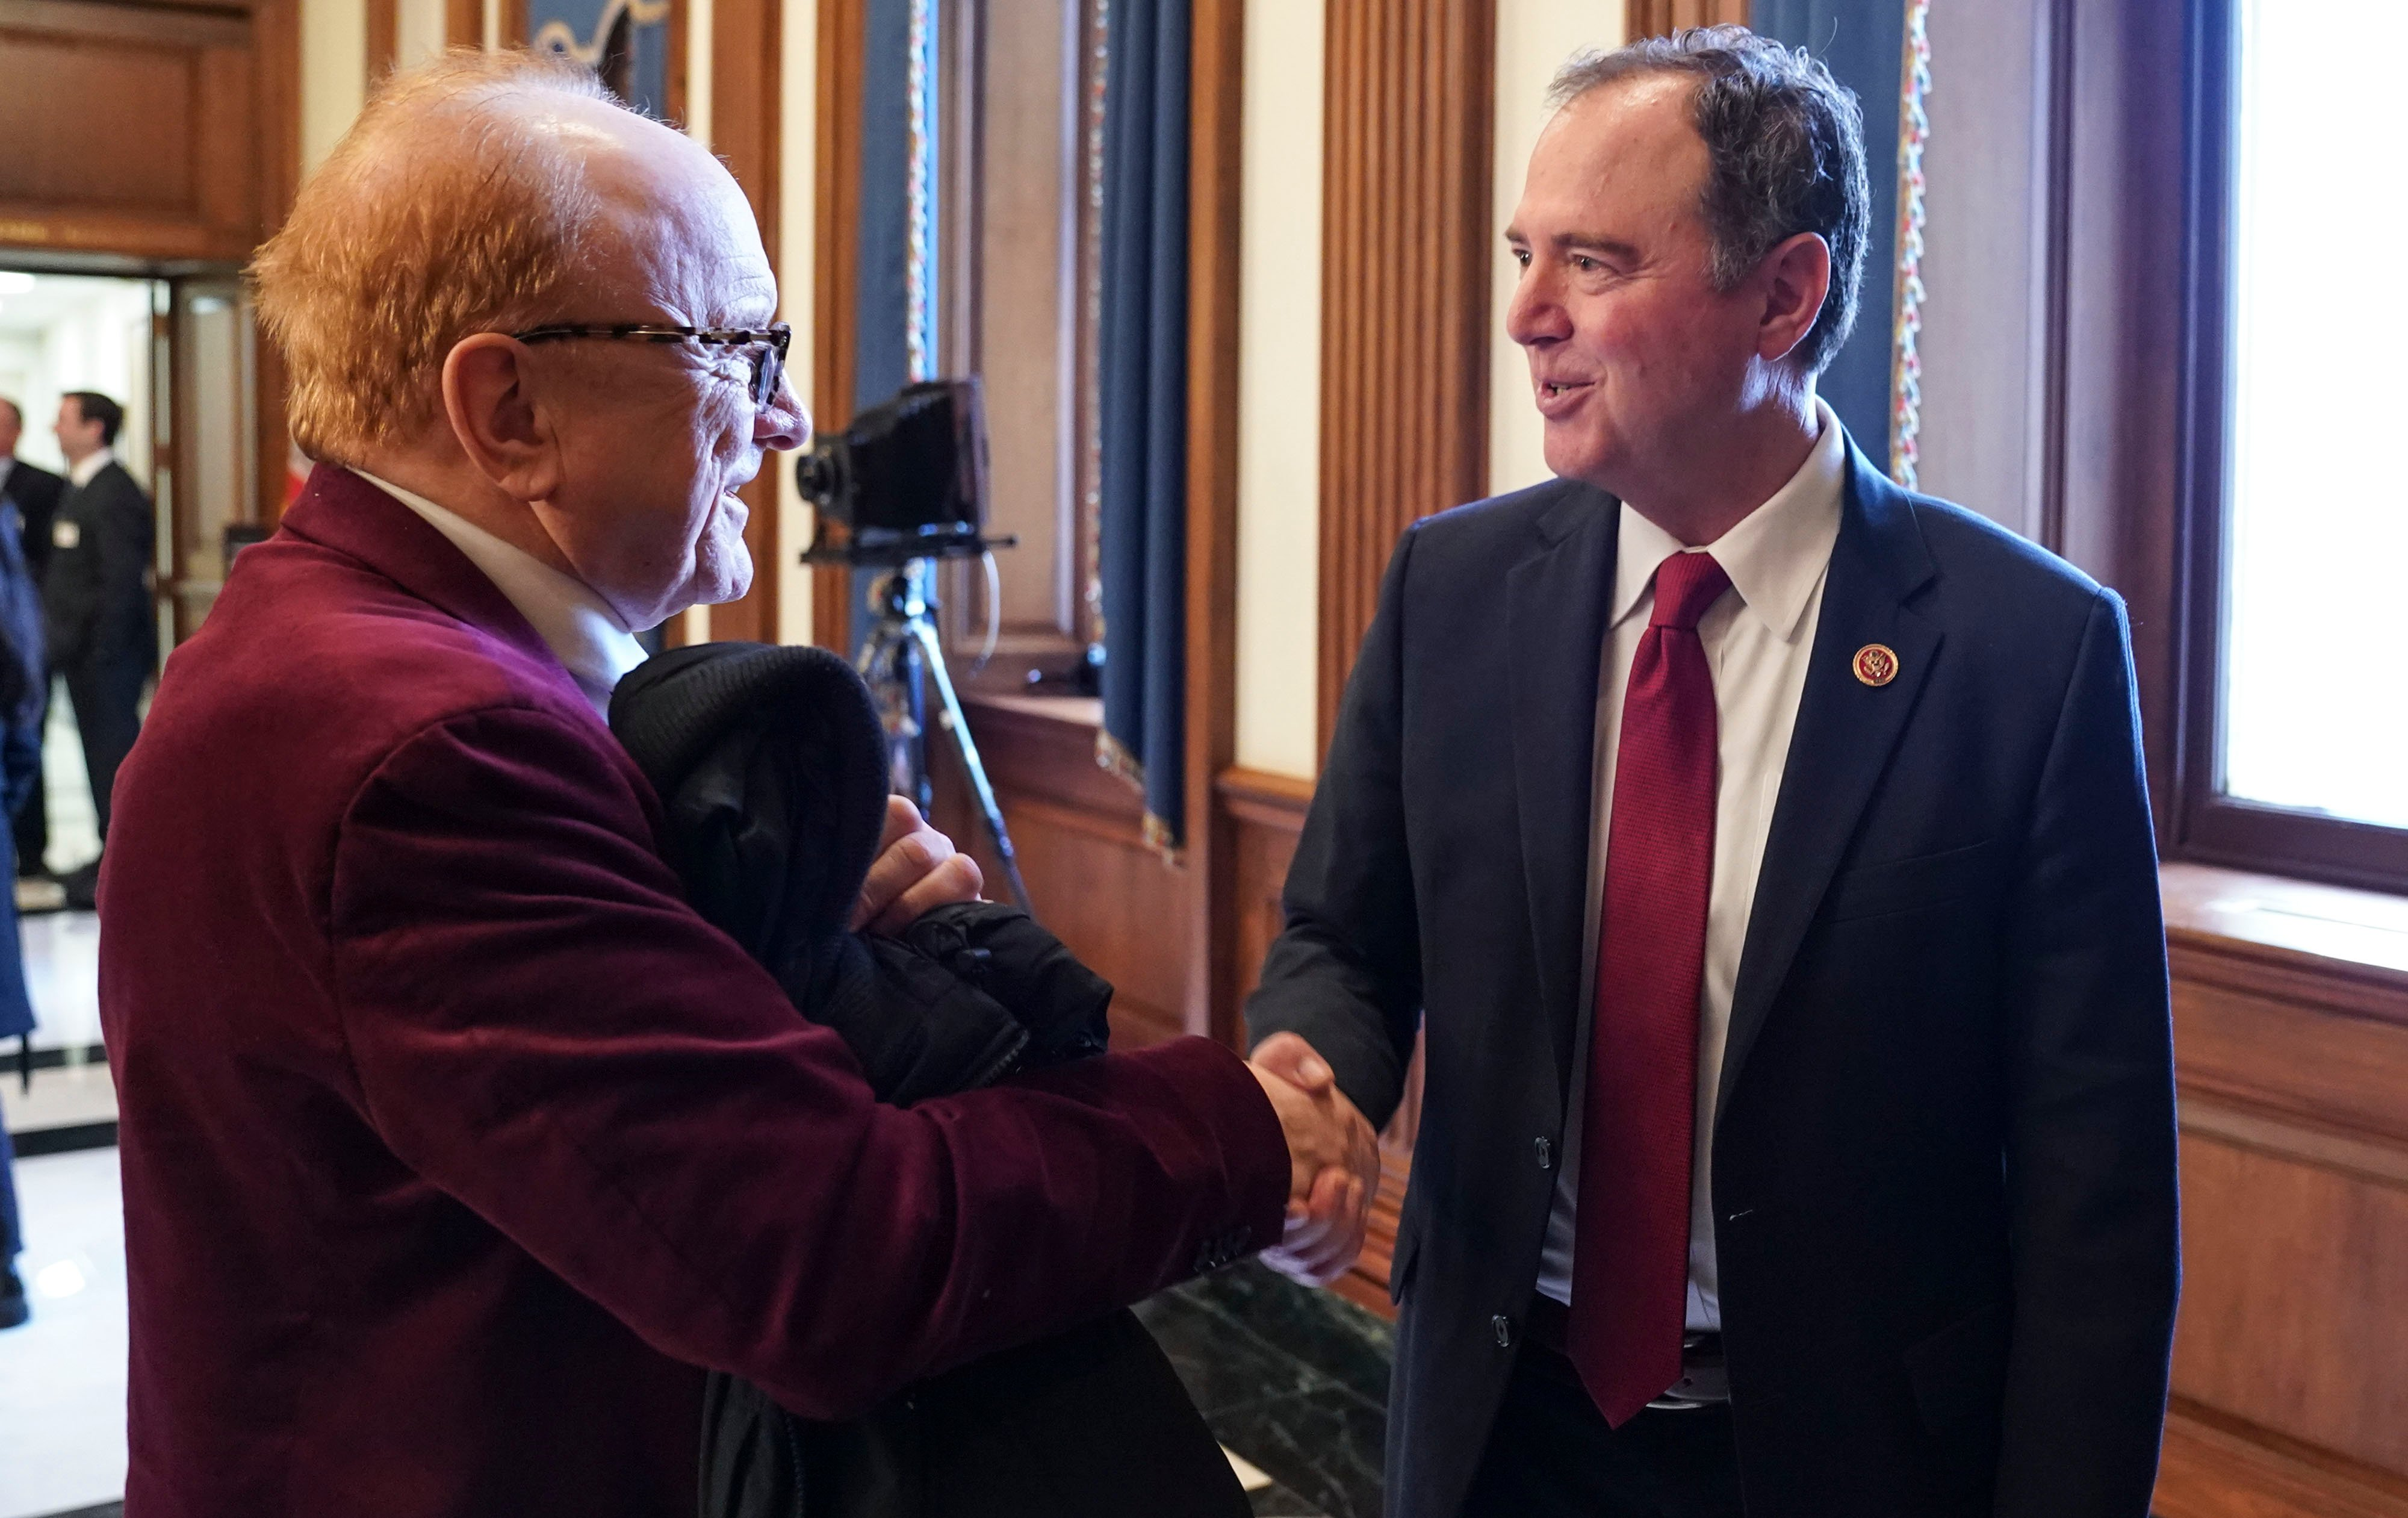 WASHINGTON, DC - FEBRUARY 26: Peter Asher speaks with Representative Adam Schiff (D-CA) on Capitol Hill on February 26, 2020 in Washington, DC. (Photo by Leigh Vogel/Getty Images for The Recording Academy)